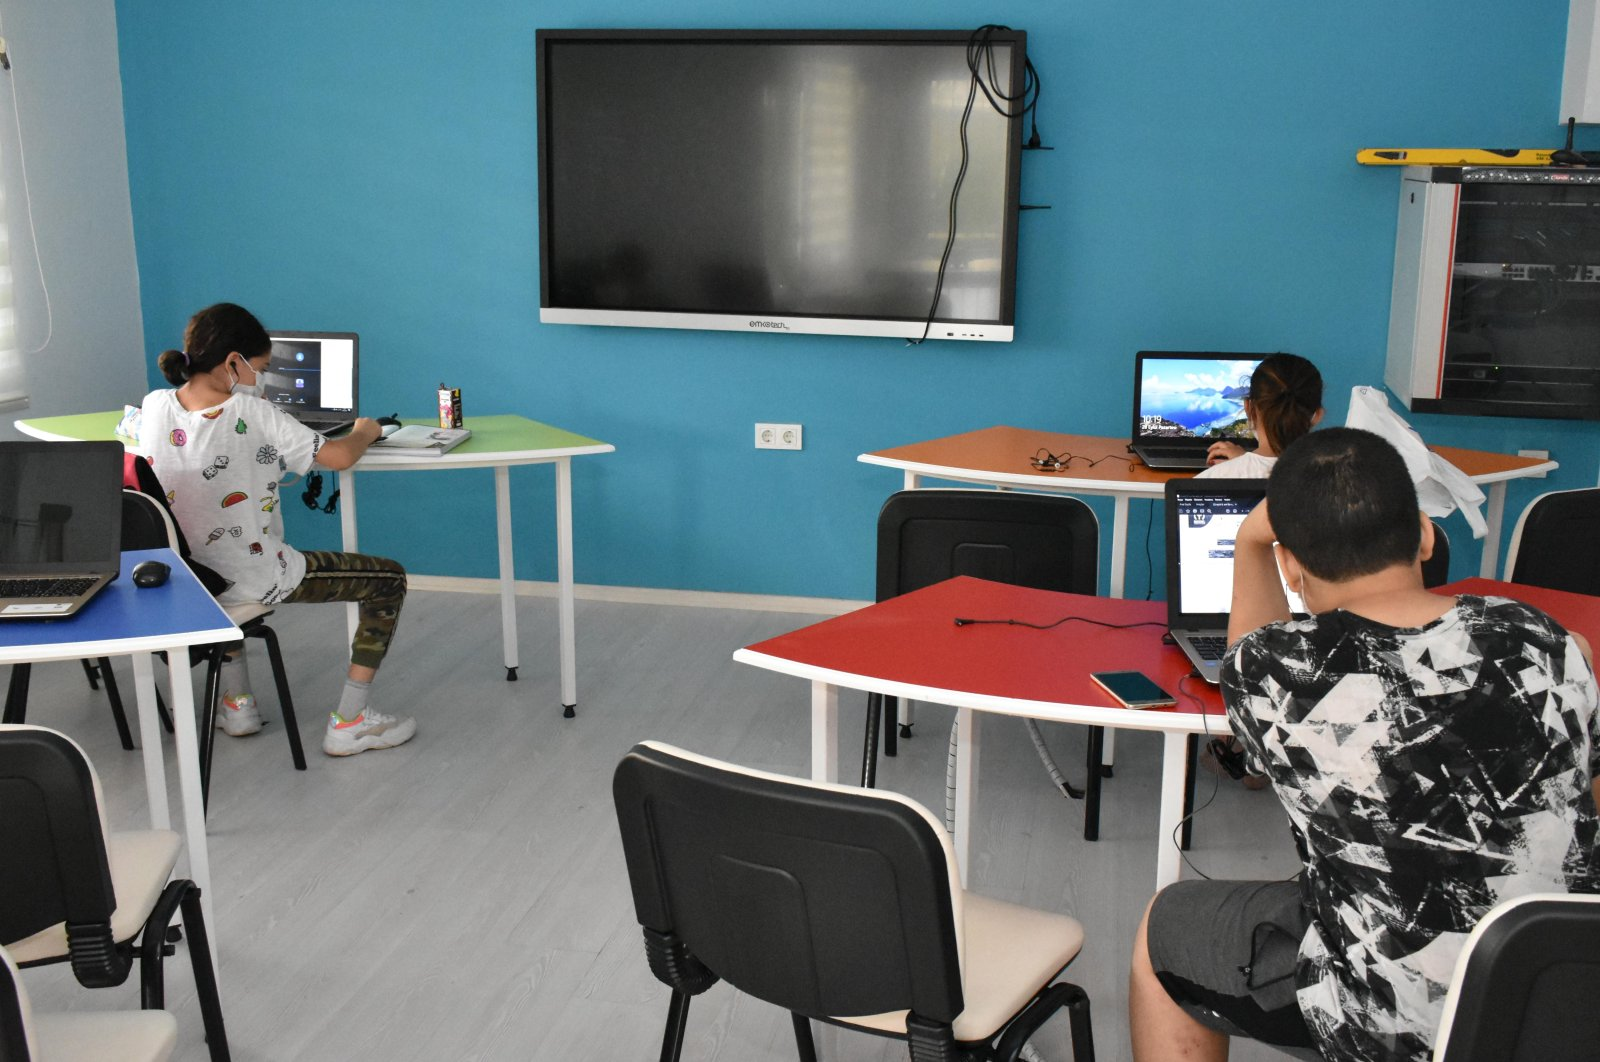 Students participate in online education at a municipality center in the Balçova district of western Izmir, Turkey, Sept. 28, 2020. (IHA Photo)